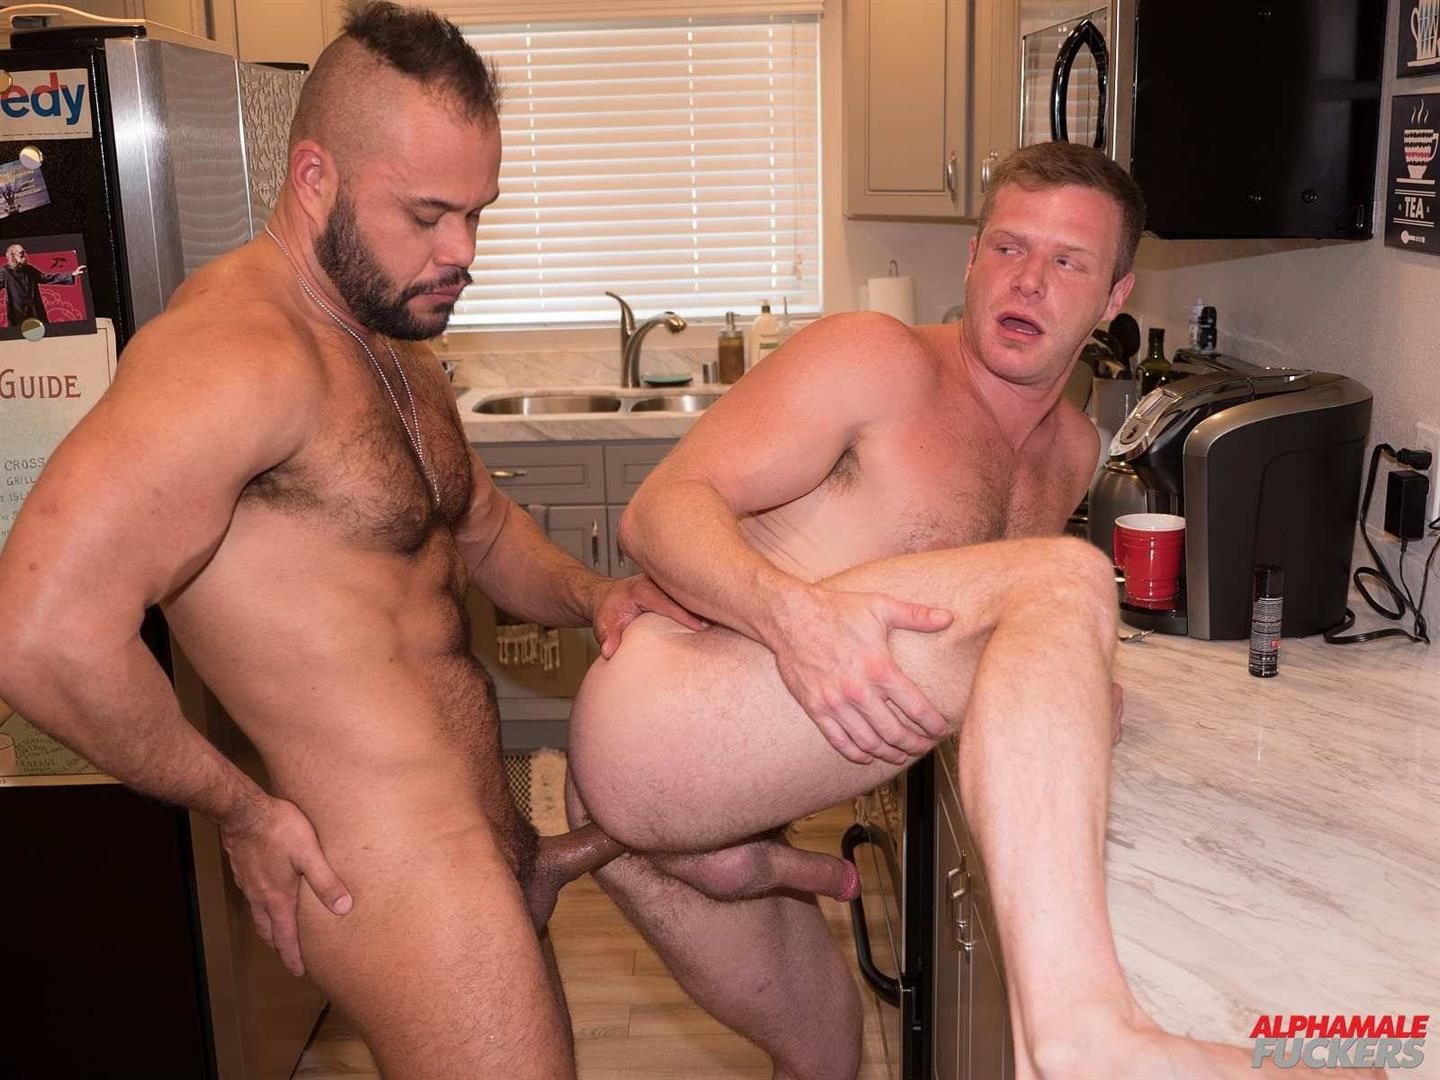 Alpha-Male-Fuckers-Brian-Bonds-and-Damien-Kilauea-Bareback-Gay-Sex-23 Brian Bonds Getting Fucked In His Kitchen By Damien Kilauea